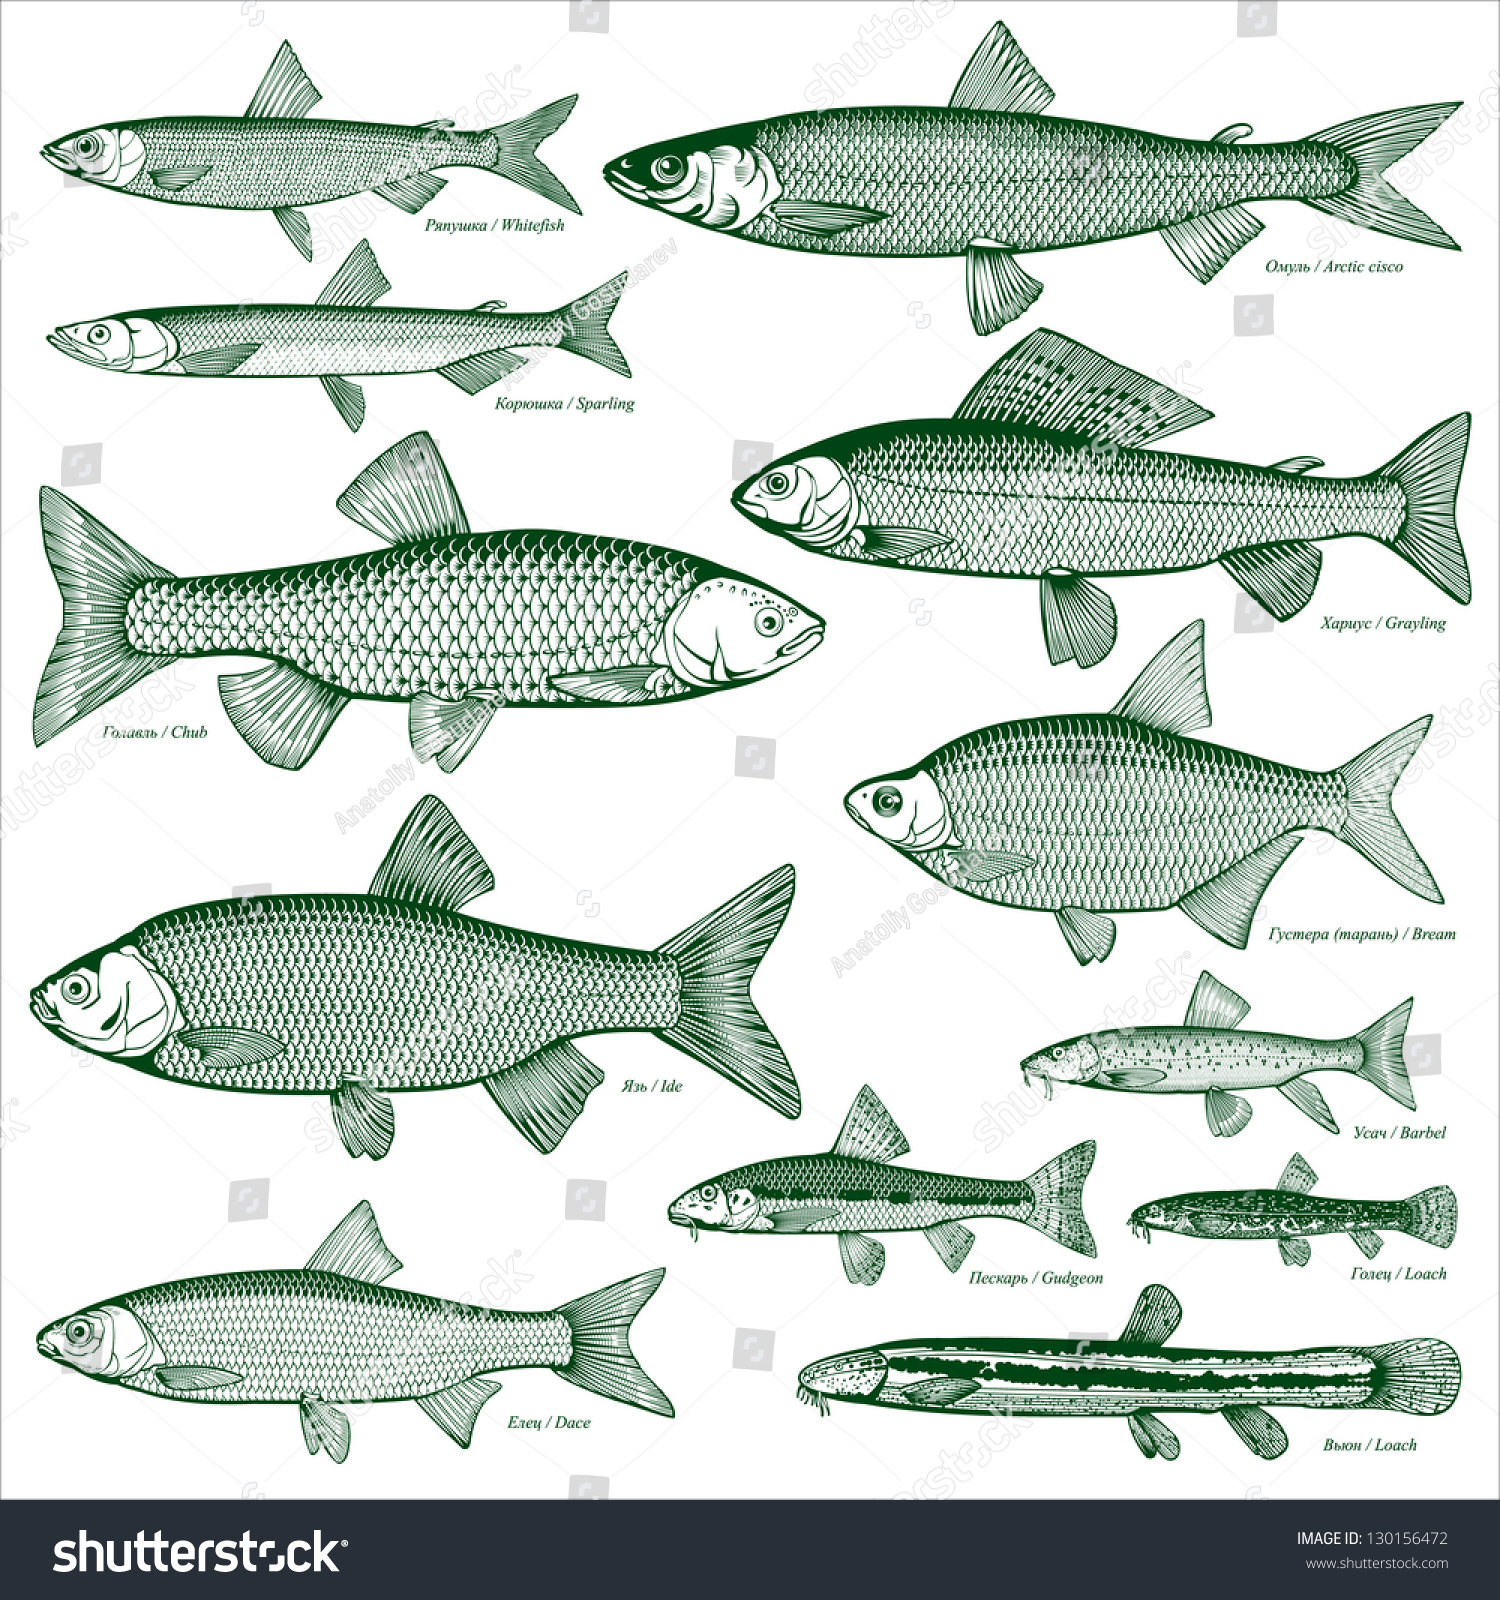 Freshwater fish dace - Fish Freshwater Vector 3 Types Freshwater Fish Silhouettes Of Fish Isolated Background